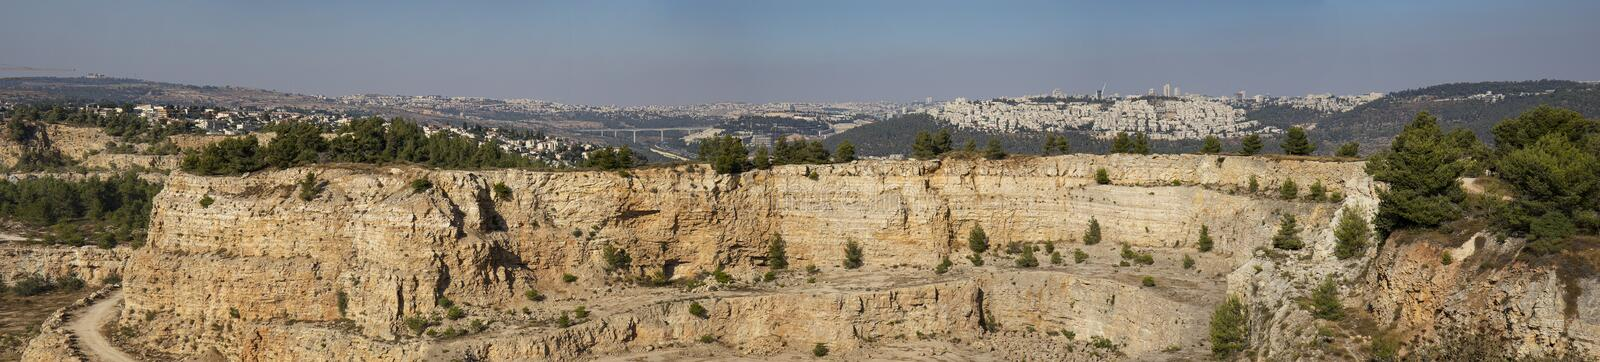 Jerusalem from a Different Angle stock image